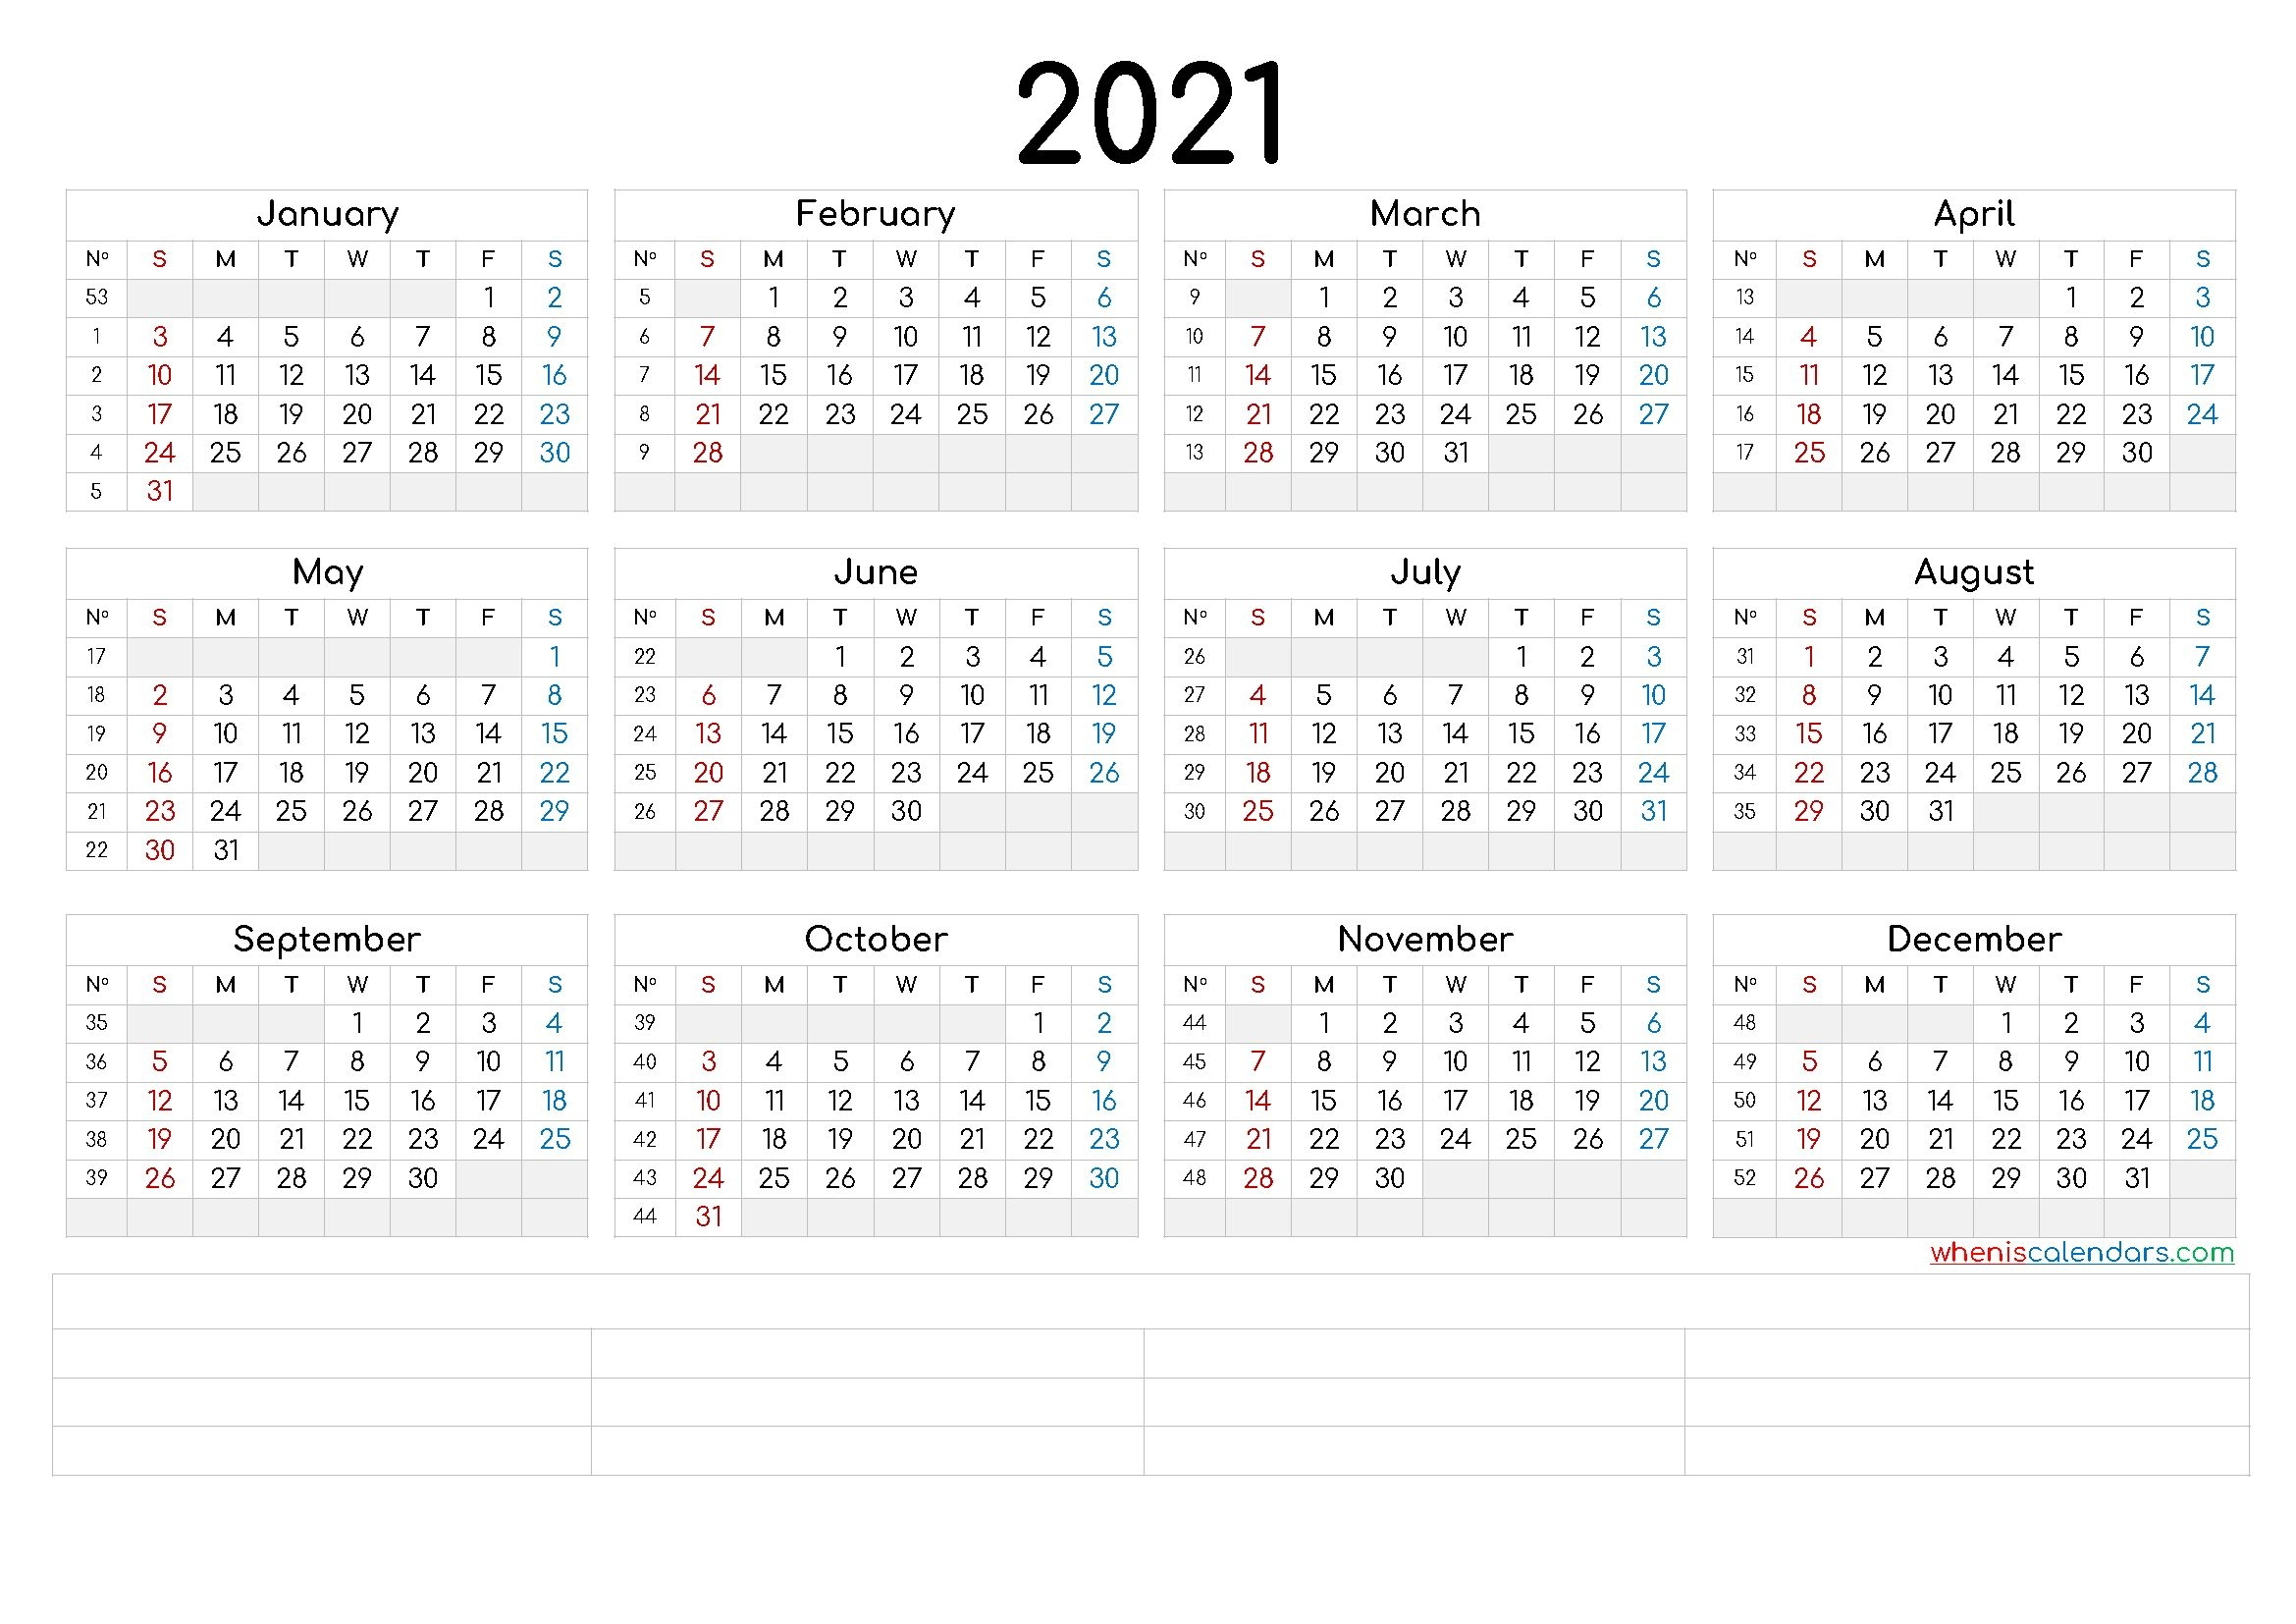 printable 2021 calendaryear (6 templates) – free